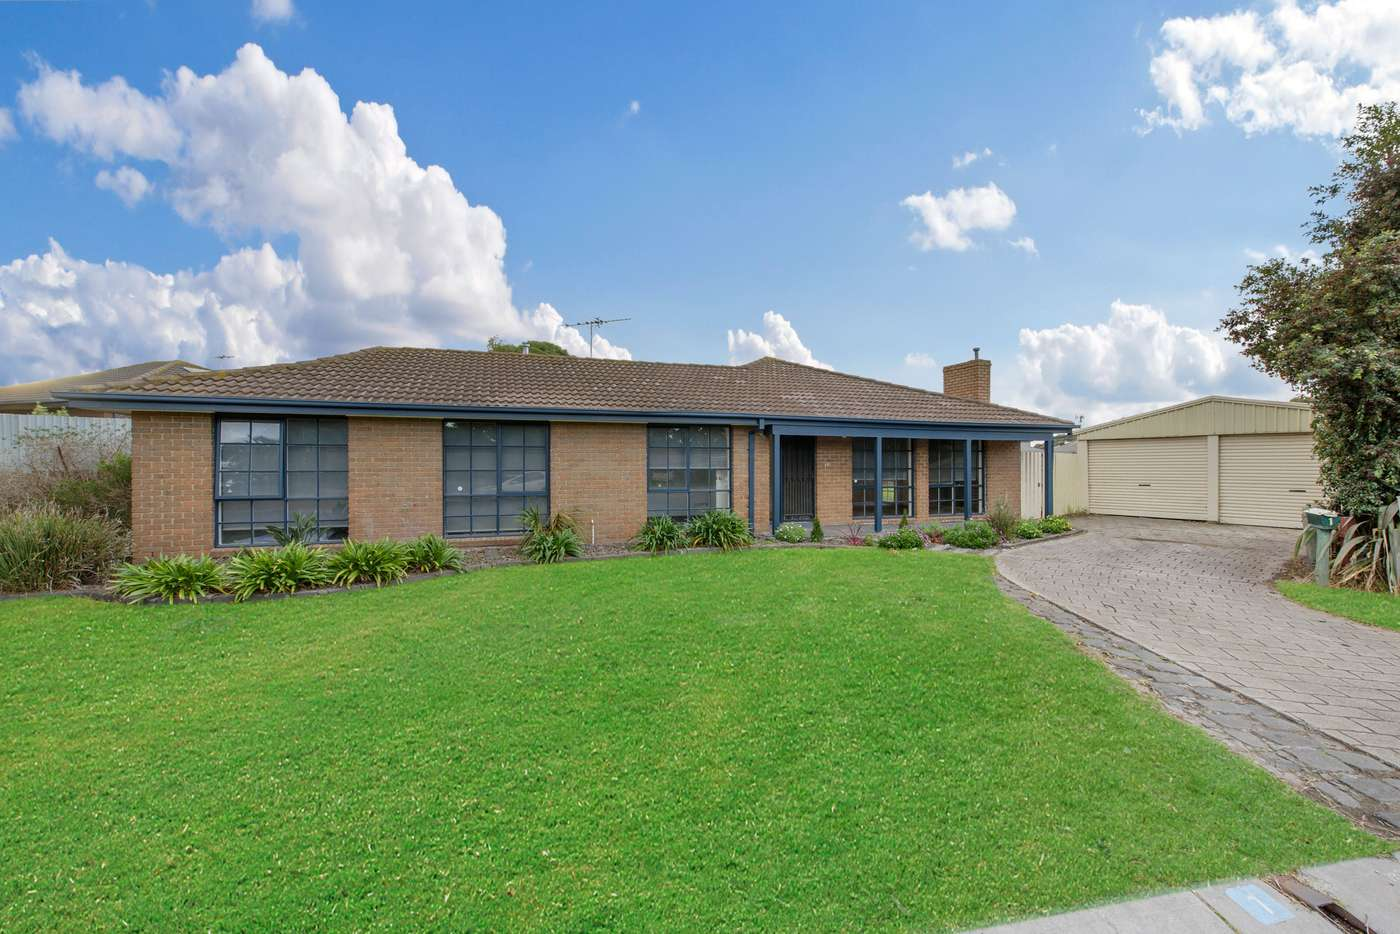 Main view of Homely house listing, 1 Lock Court, Sunbury VIC 3429